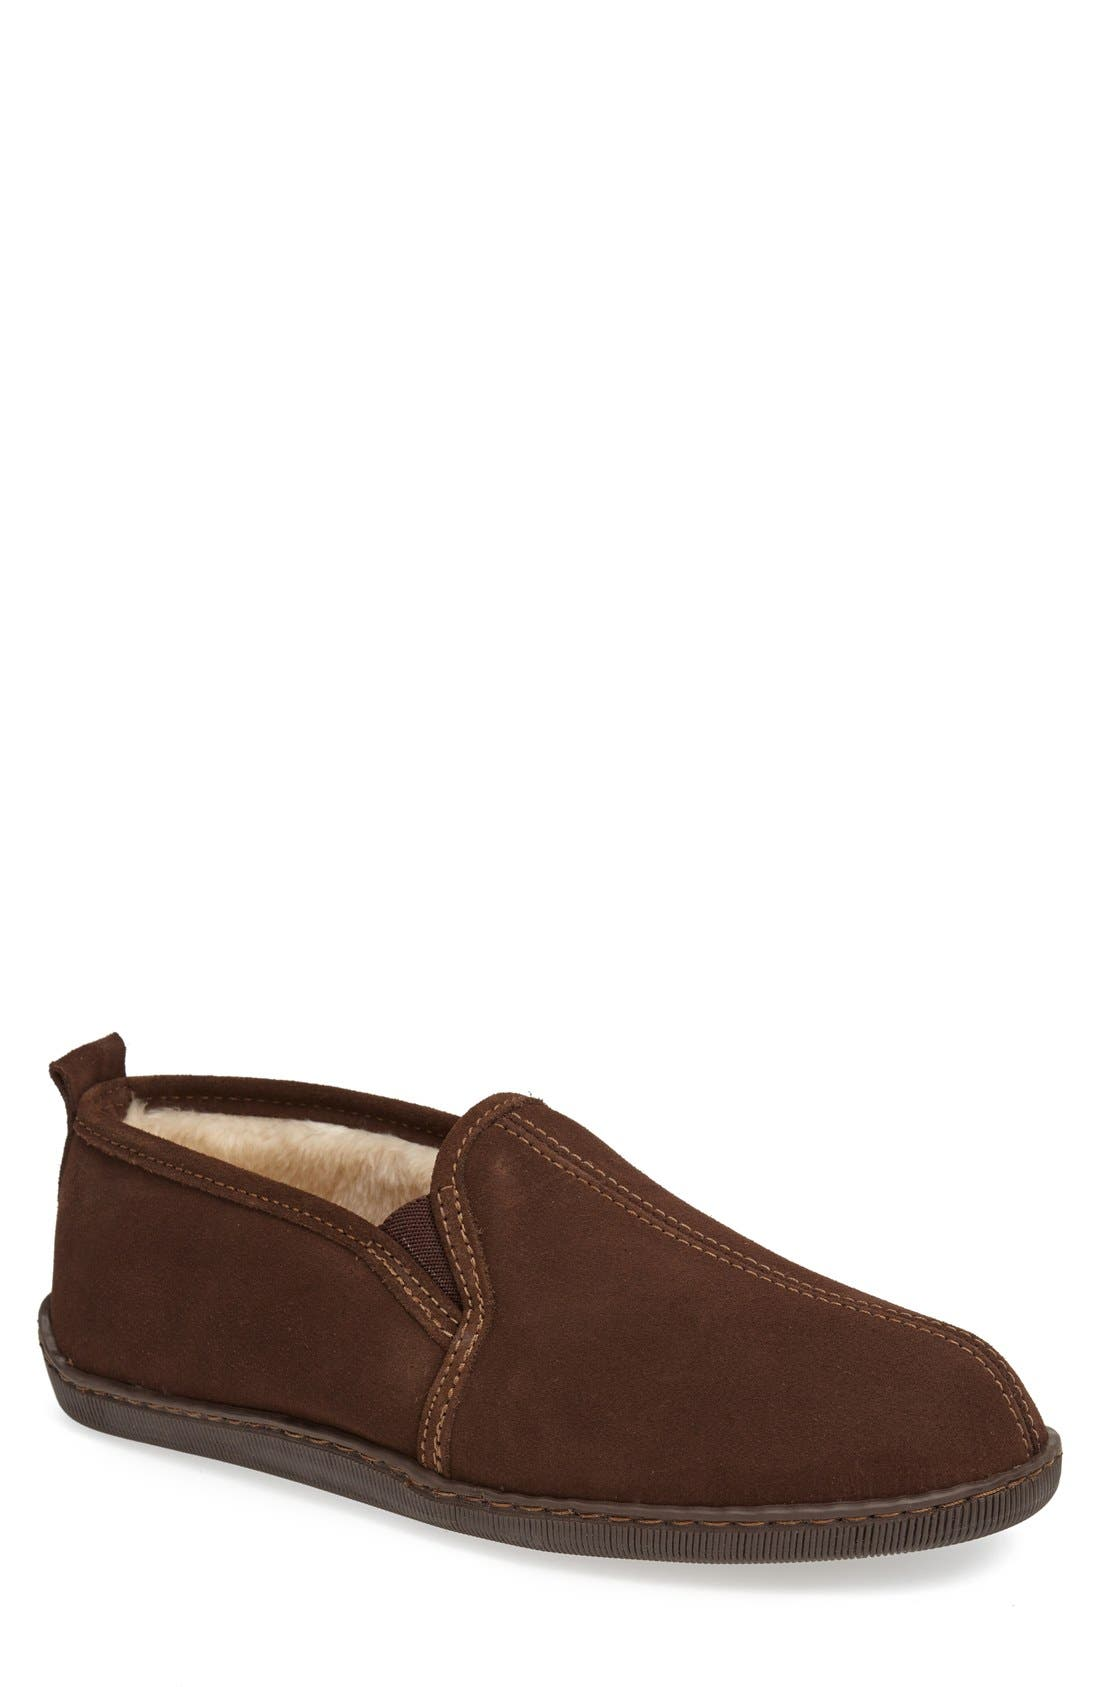 Minnetonka Suede Slipper (Men)